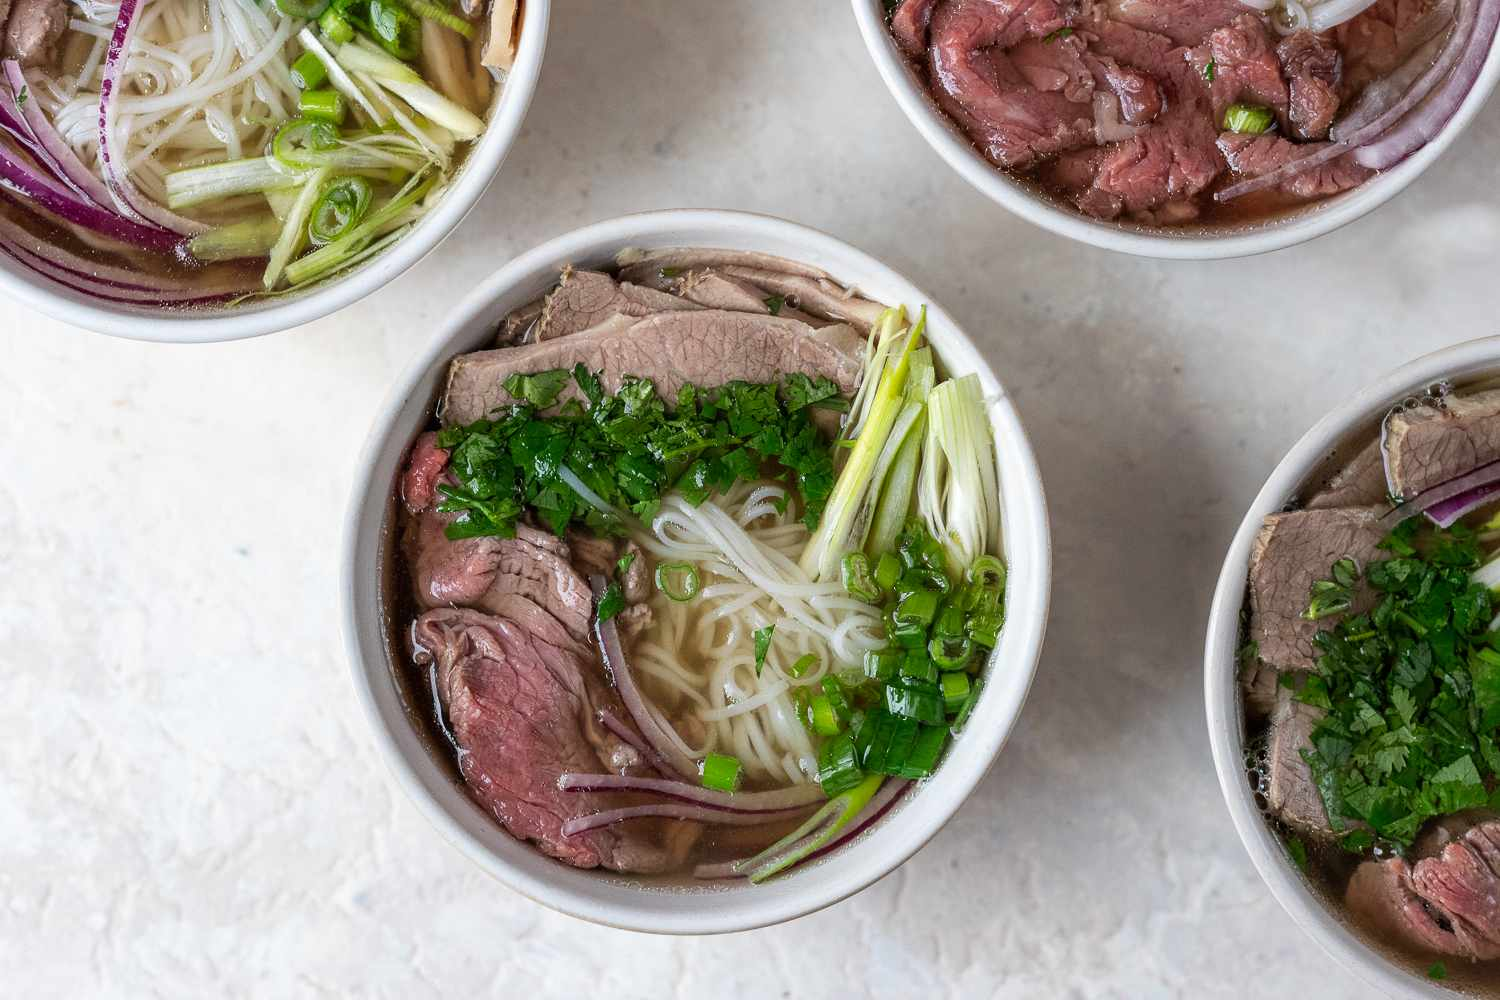 broth added to the pho